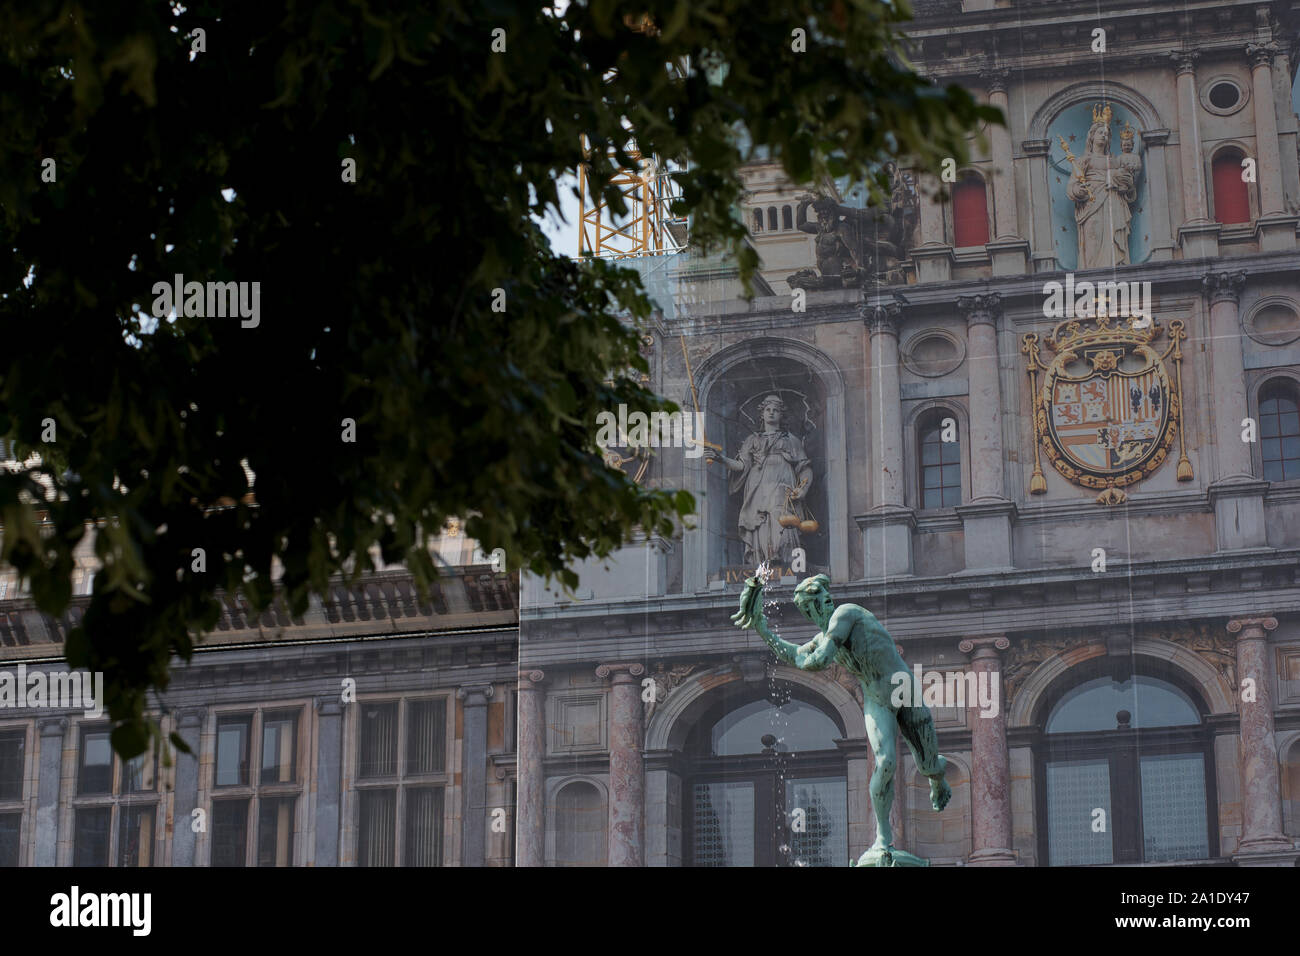 Statue of Silvius Brabo, slayer of Druon Antigoon, in the Grote Markt with the Antwerp City Hall (Antwerpen Stadhuis) in the background. Stock Photo